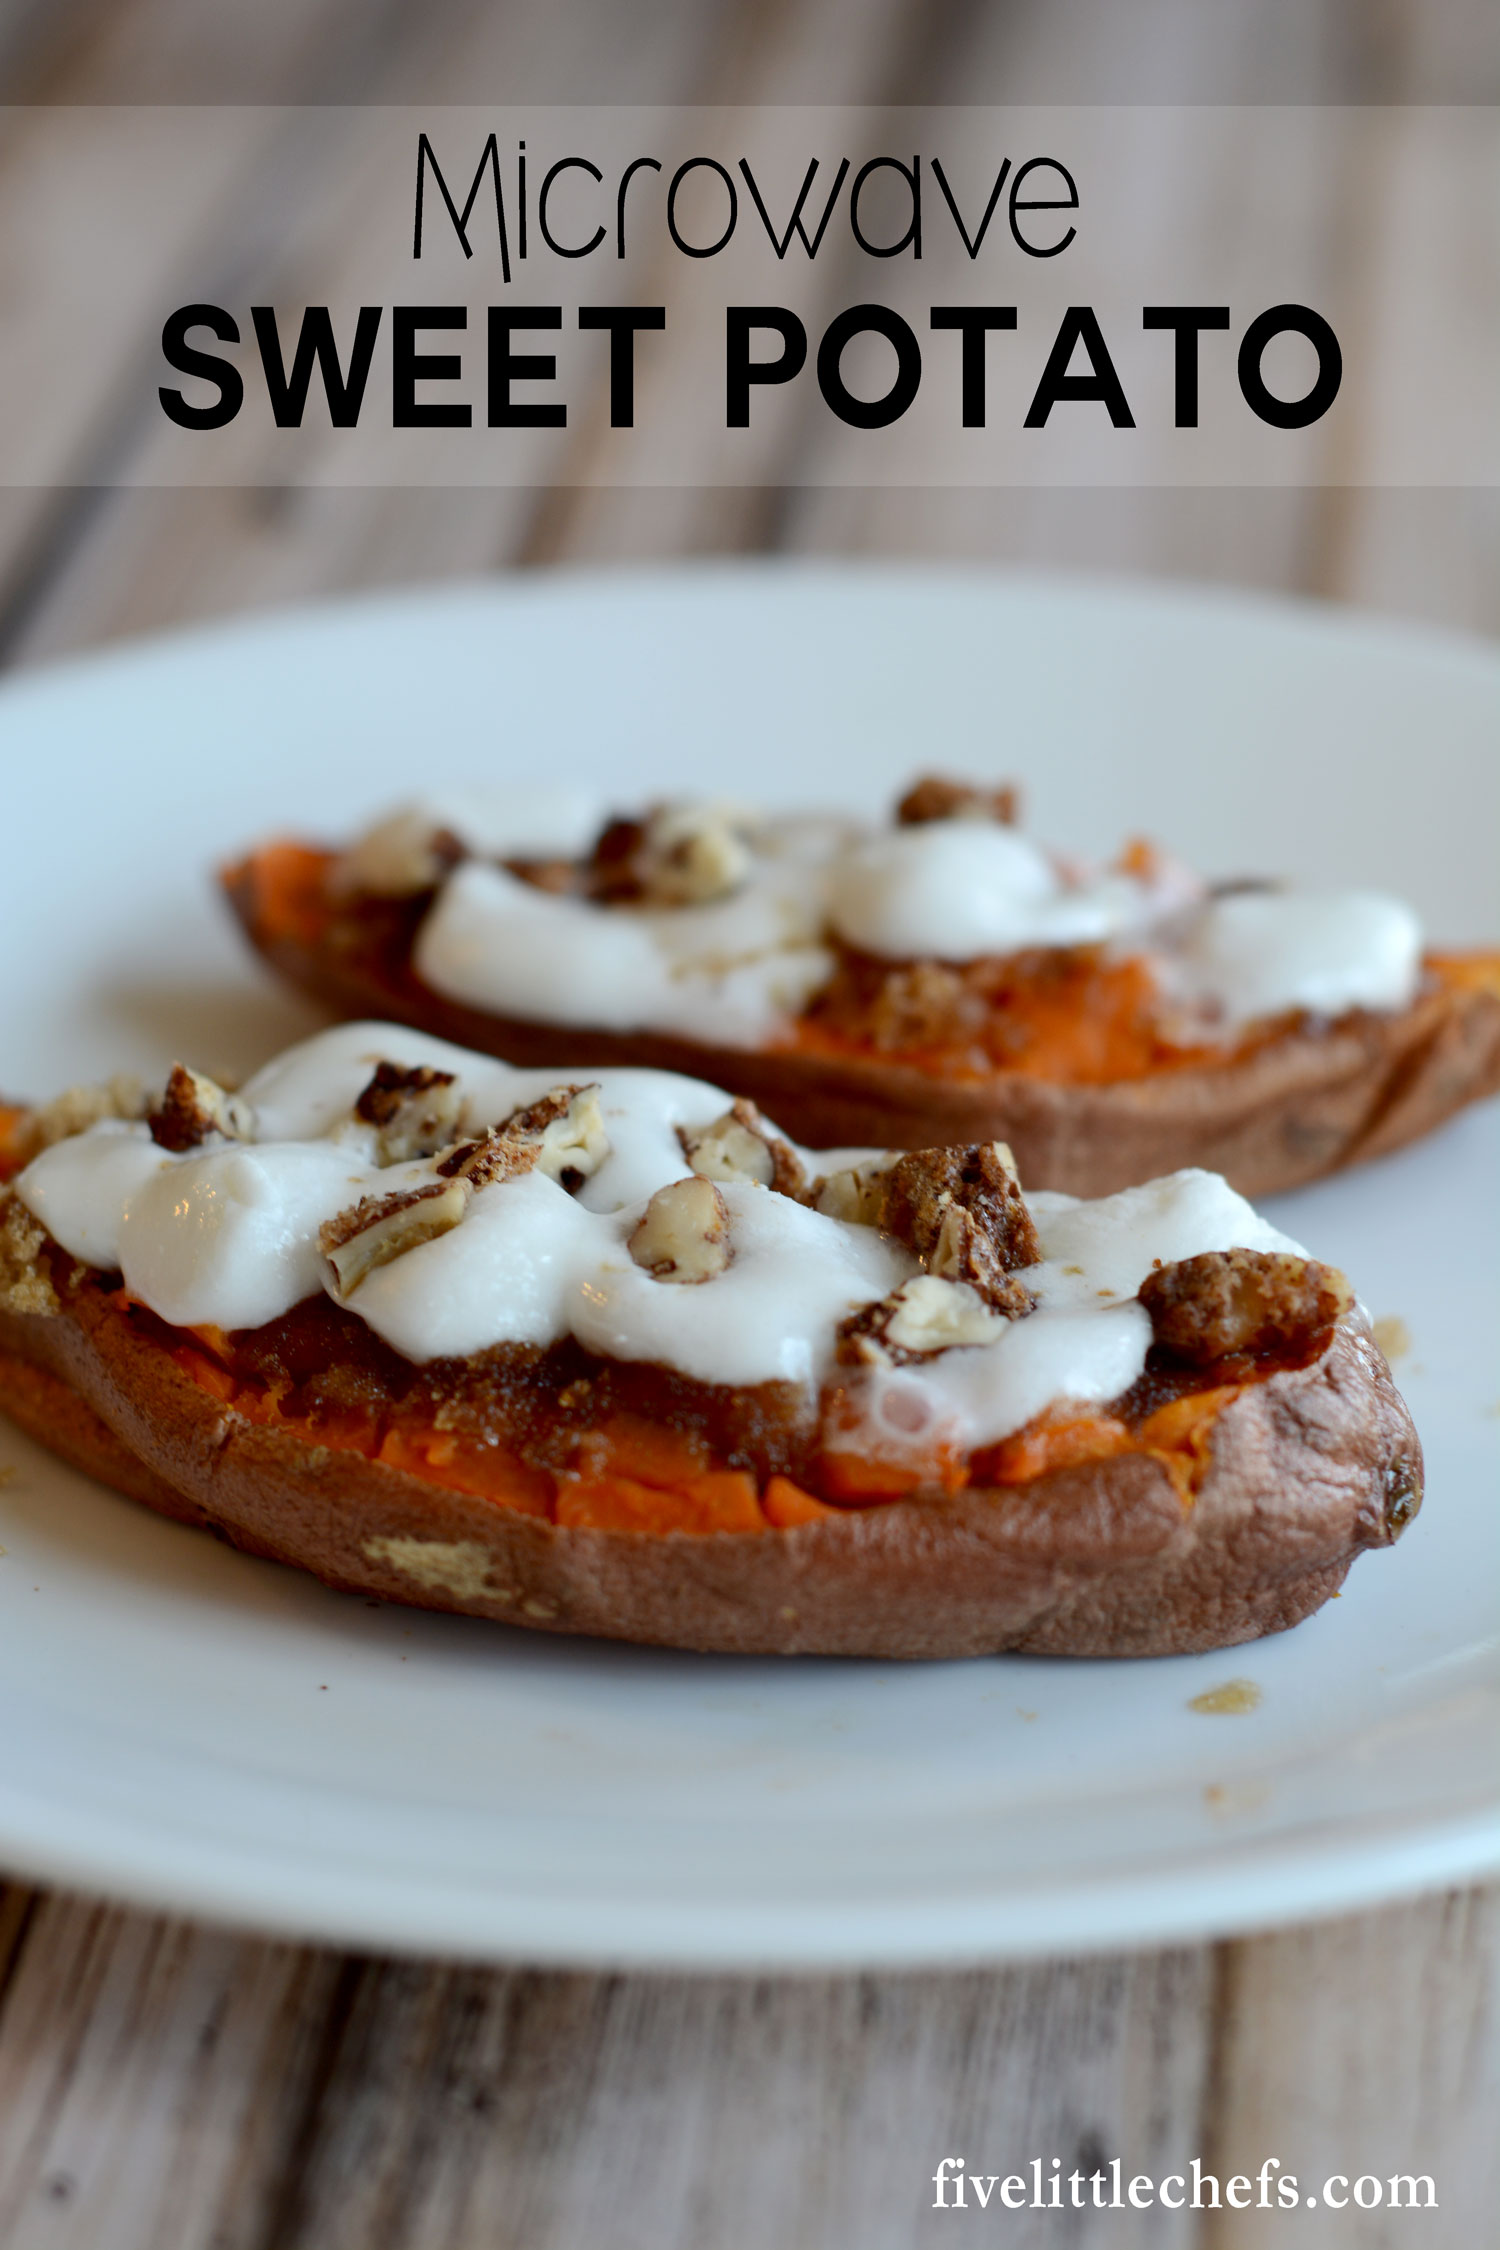 Microwave sweet potato five little chefs this microwave baked sweet potato recipe is easy and quick to make not just for thanksgiving forumfinder